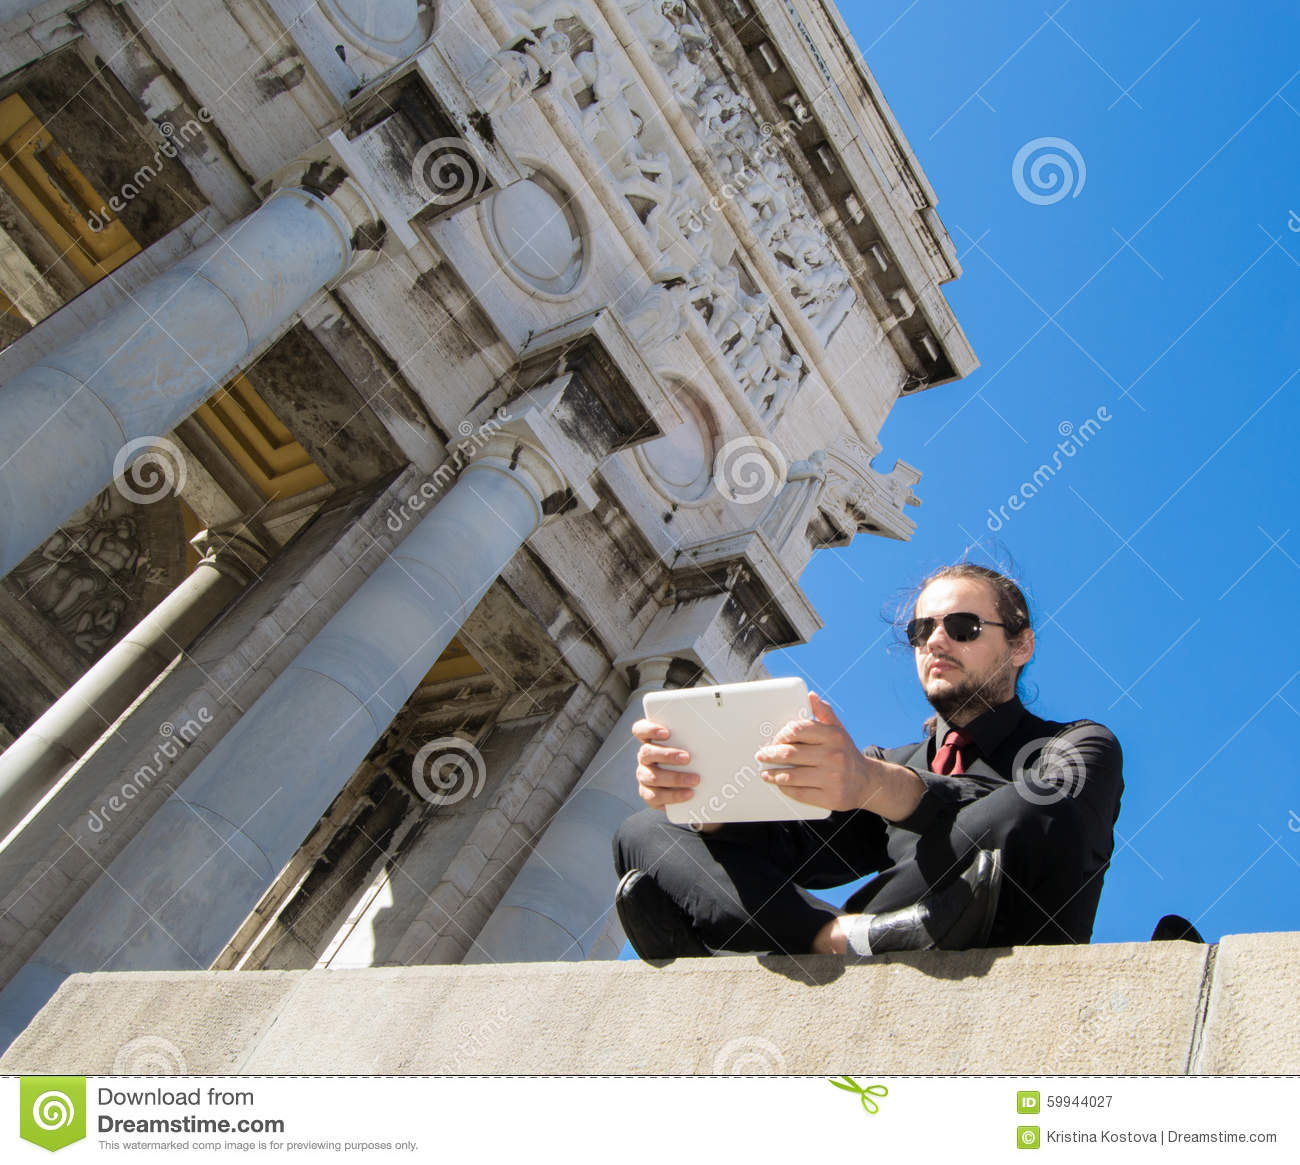 Businessman with dark suit and tablet - beautiful decorated architectonic background